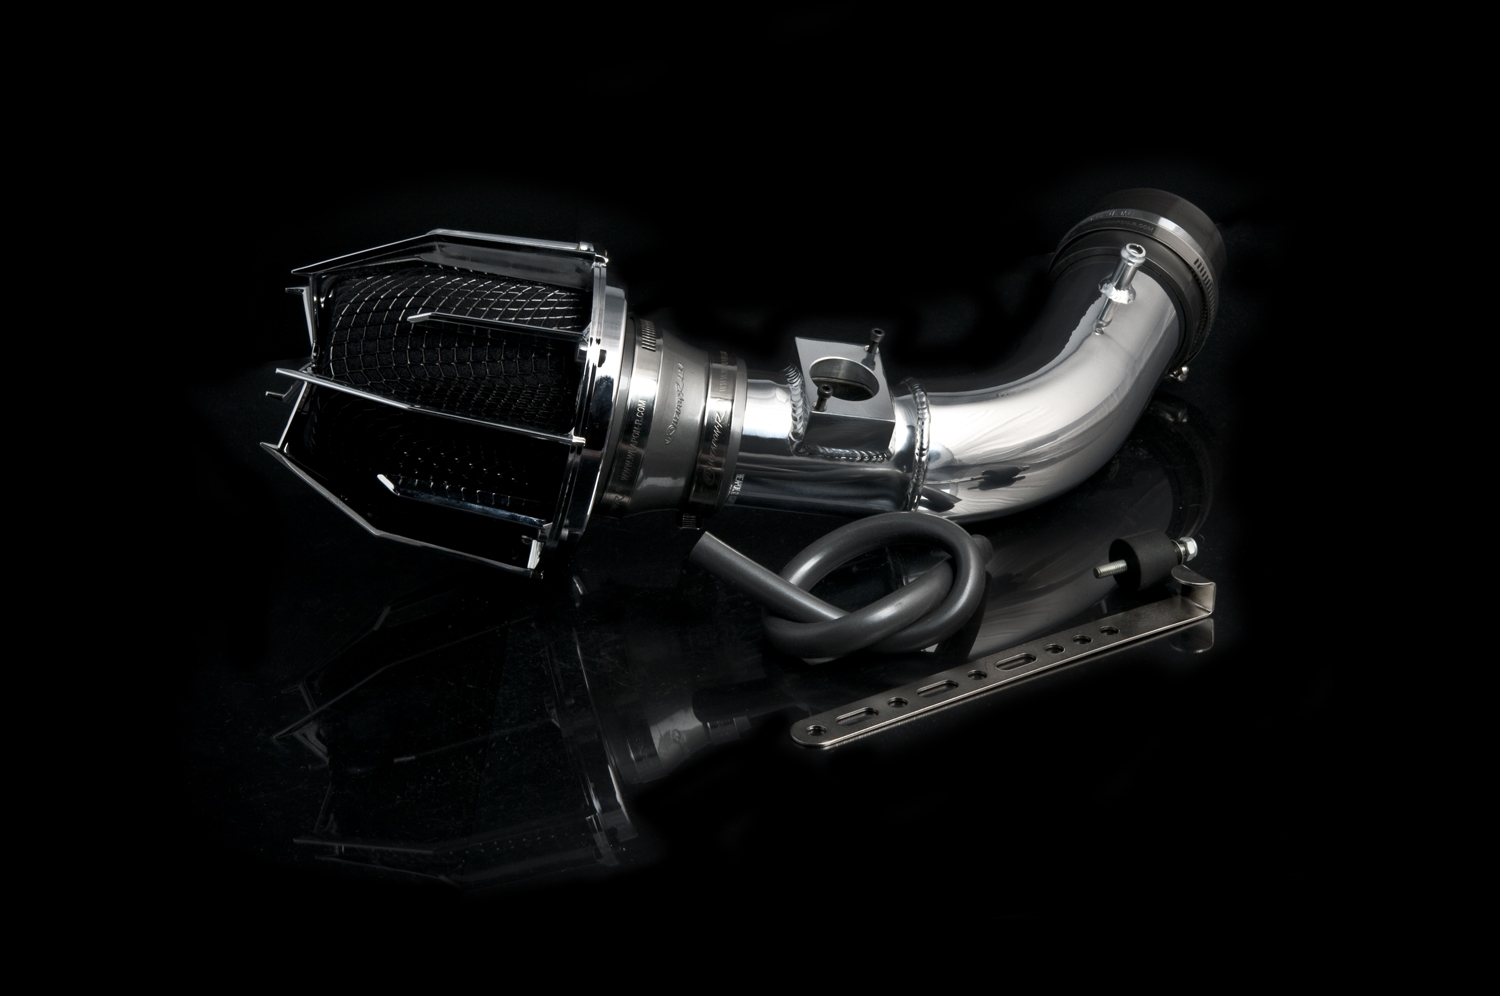 Mitsubishi Outlander / Lancer  4cyl Mivec Only 2.4l 2004-2006 Weapon-R Dragon Air Intake